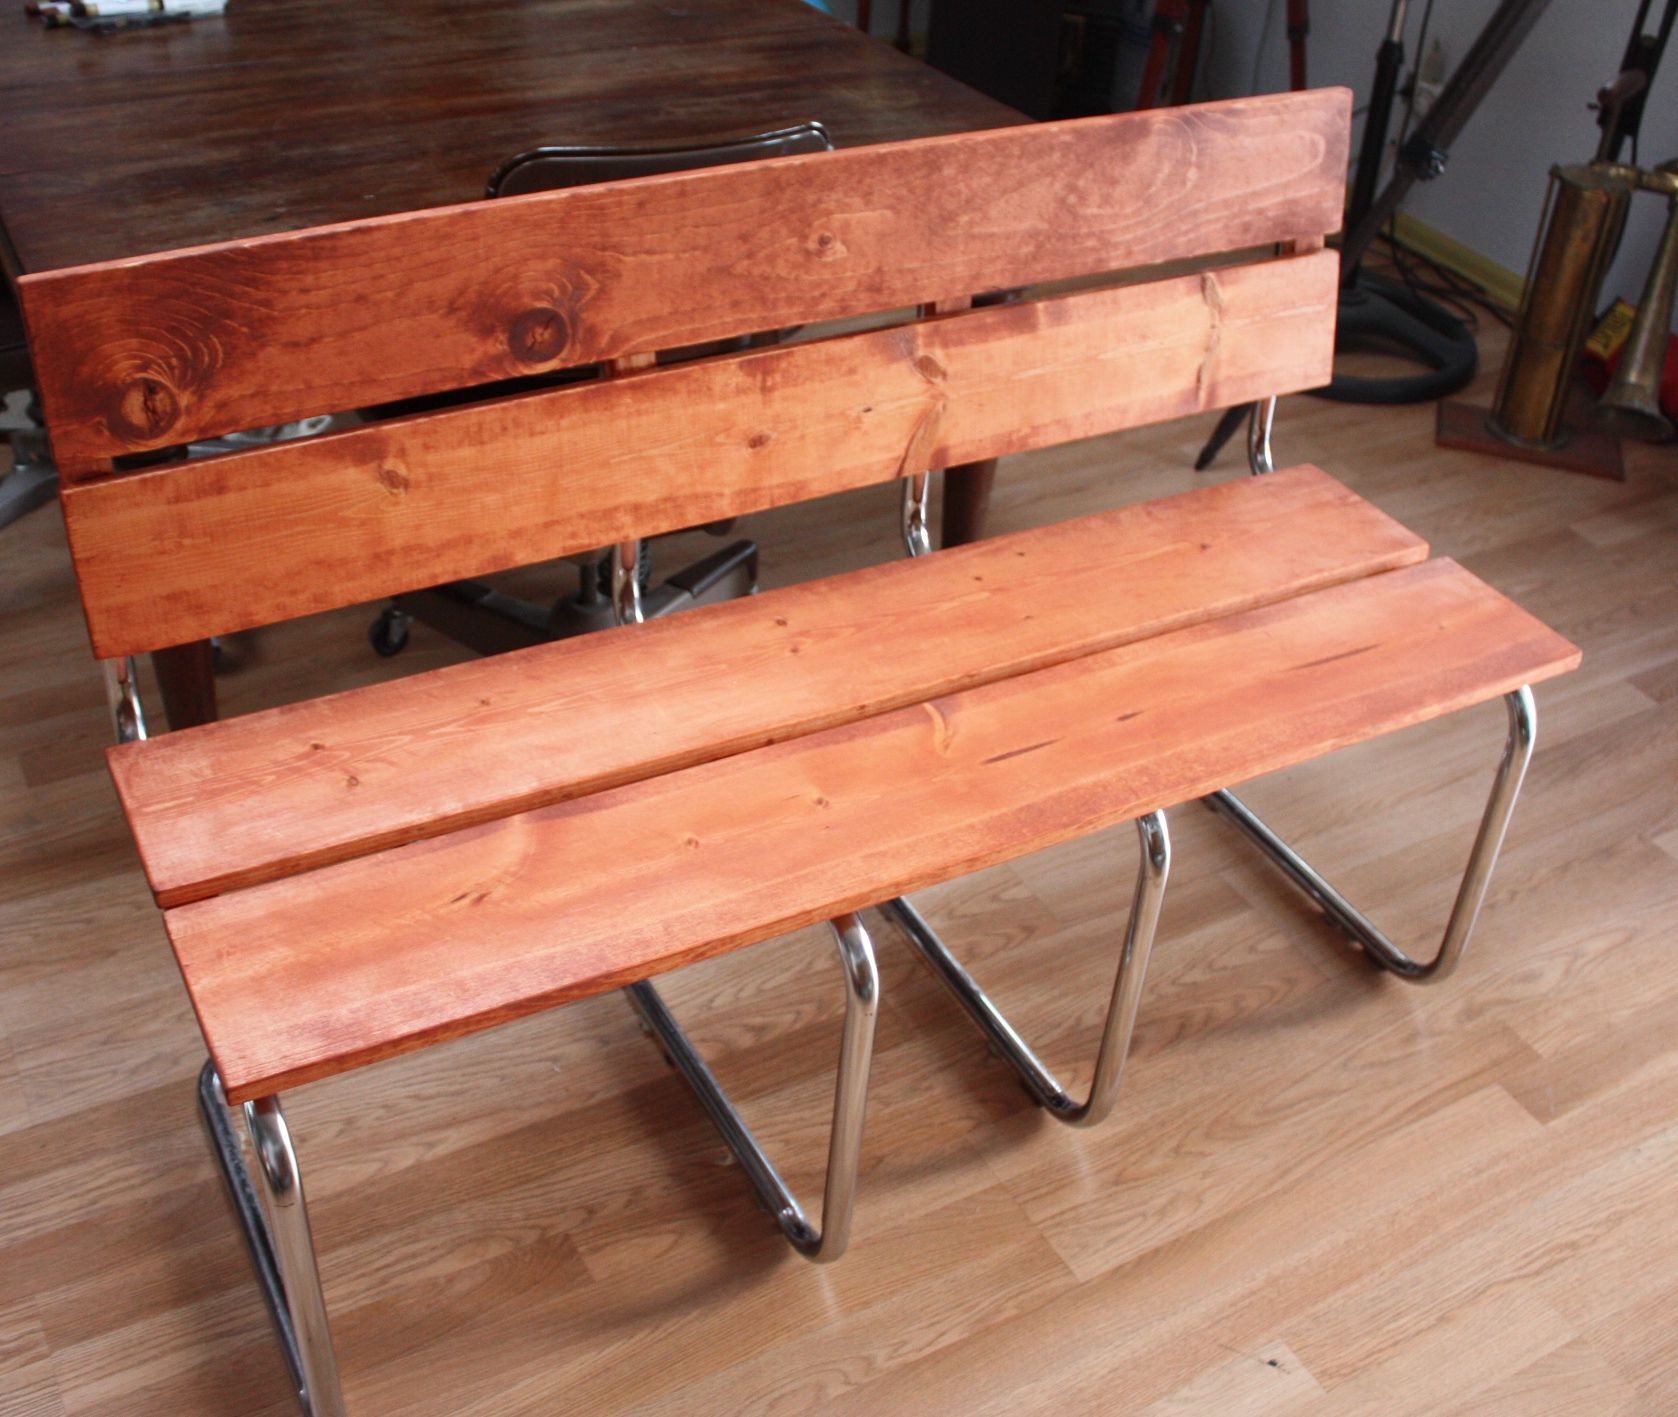 Upcycle design from two old metal chairs with wicker backs.  Used the metal to create this cool bench that we saw on Pintrest.